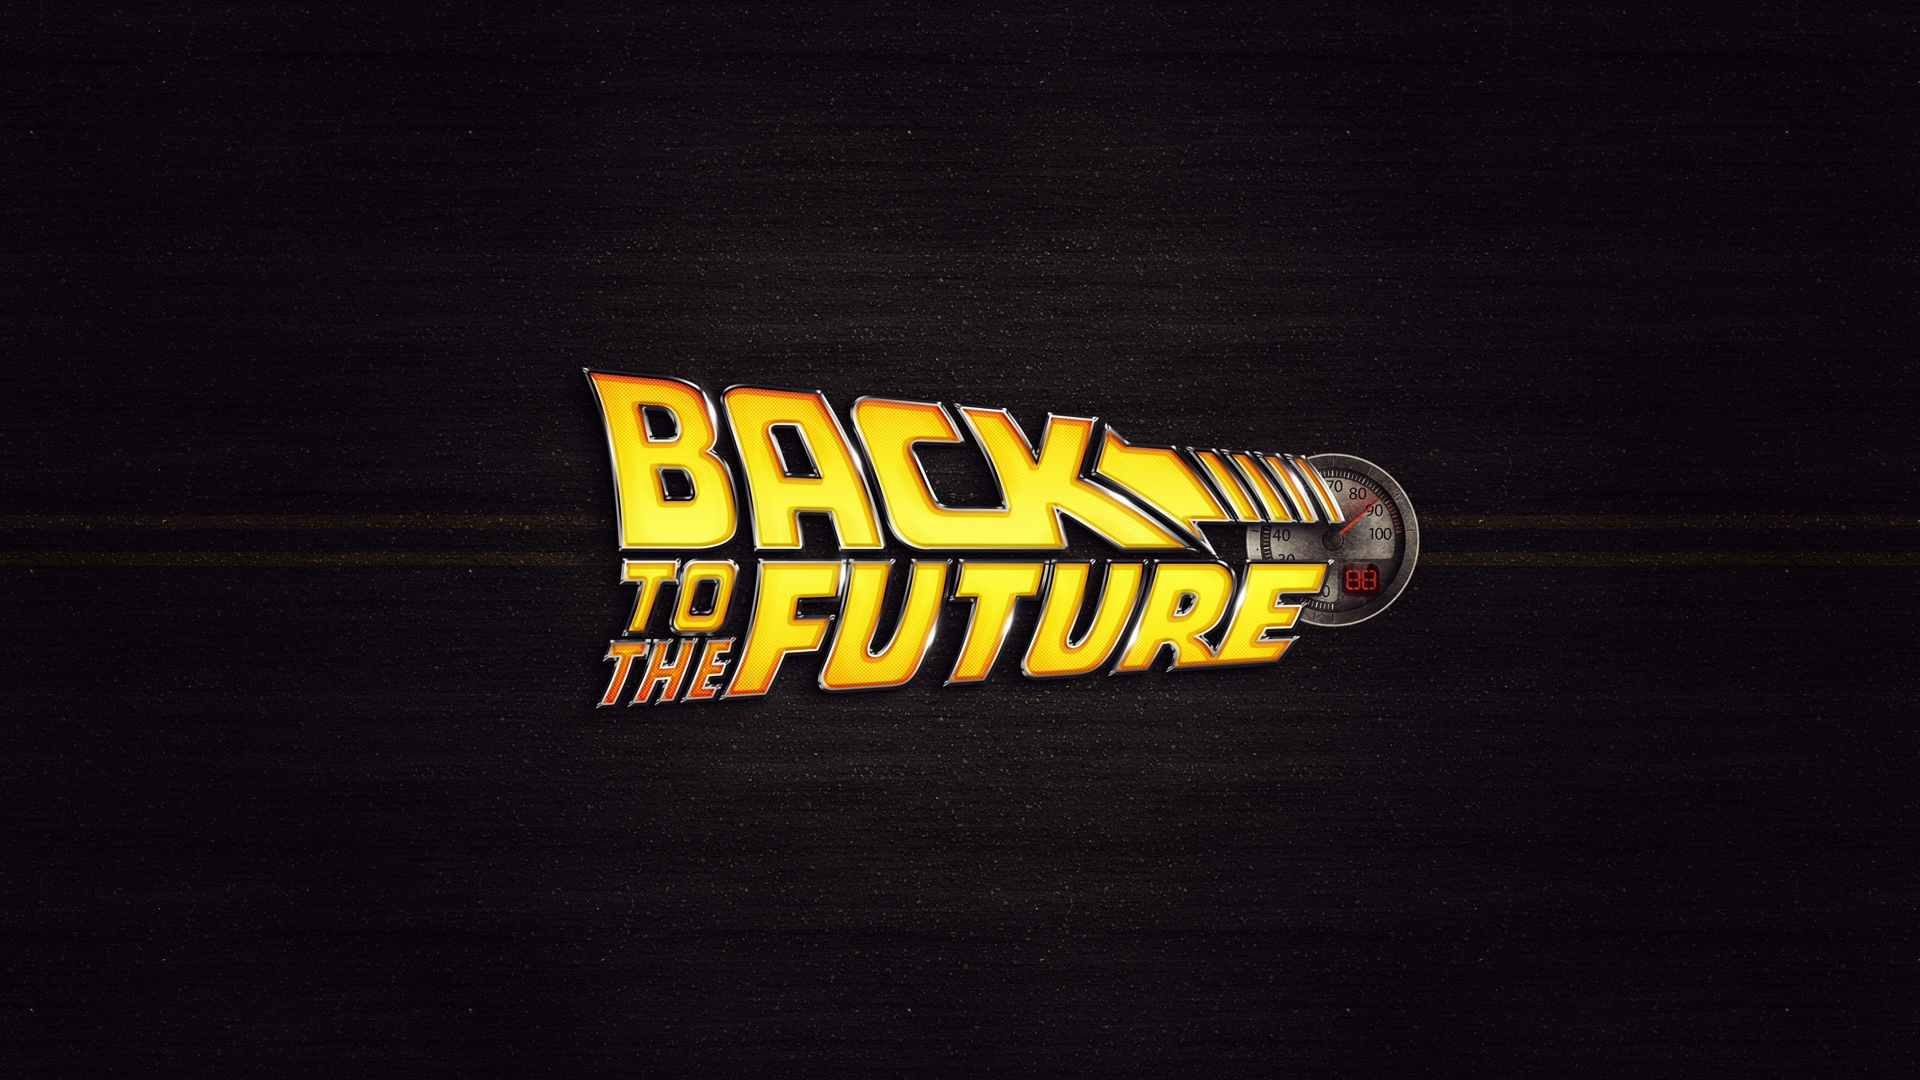 Home Movies HD Wallpapers Back To The Future Movie Wallpaper 1920x1080